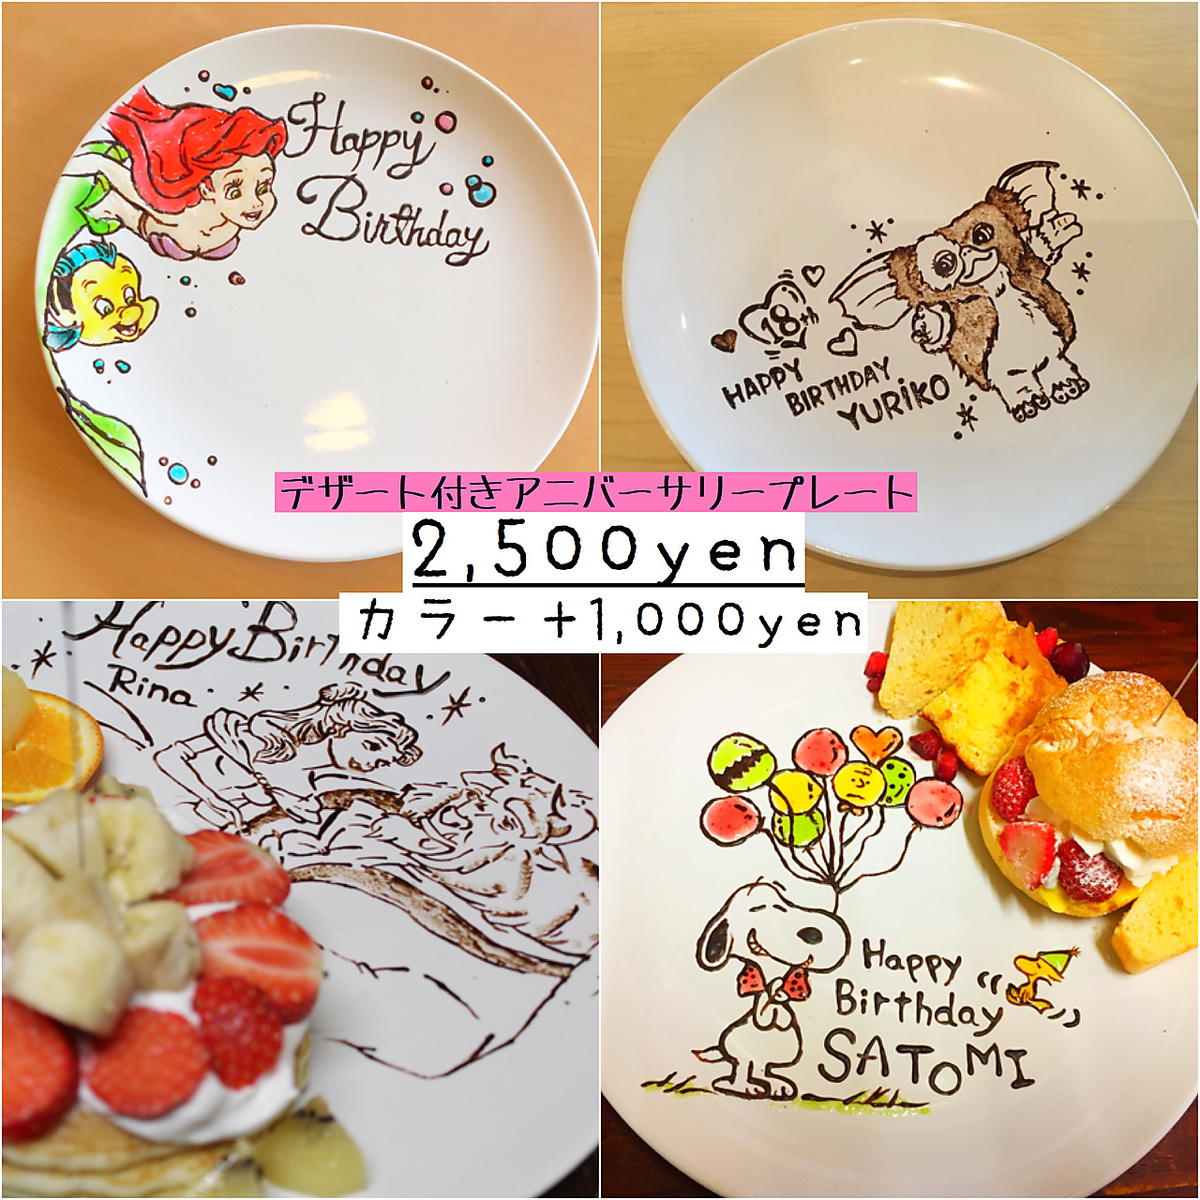 There are anniversary plates ♪